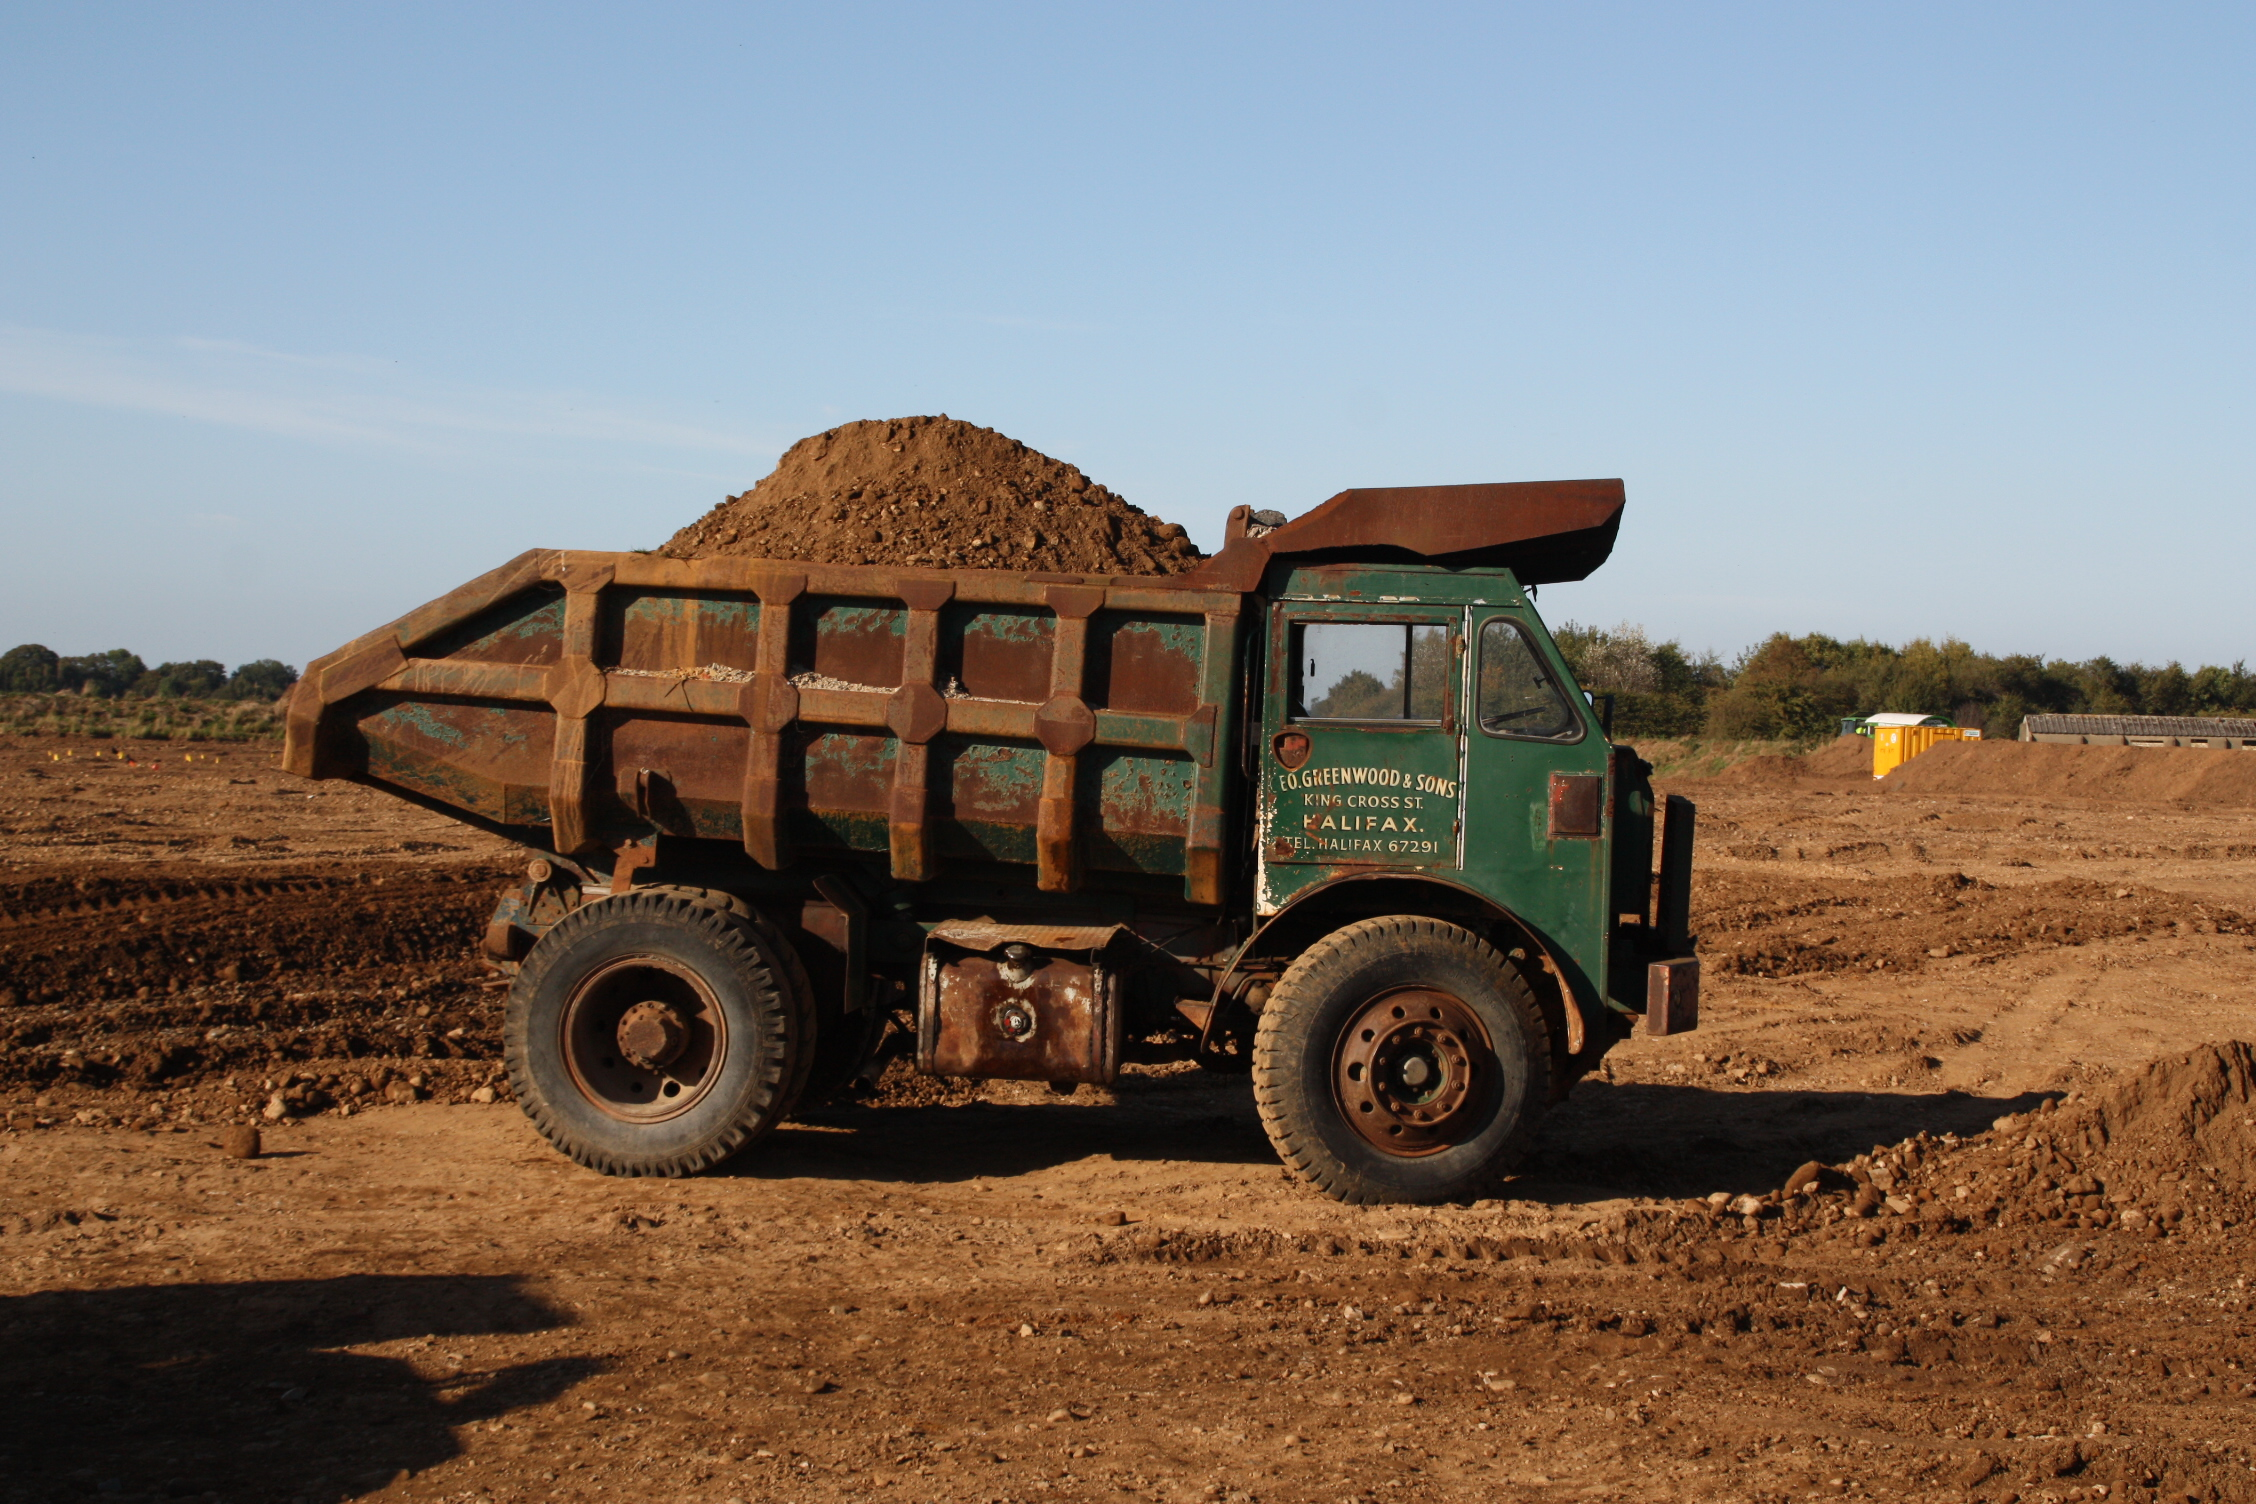 Fully loaded quarry dump truck image foden dump truck in the quarry at scorton